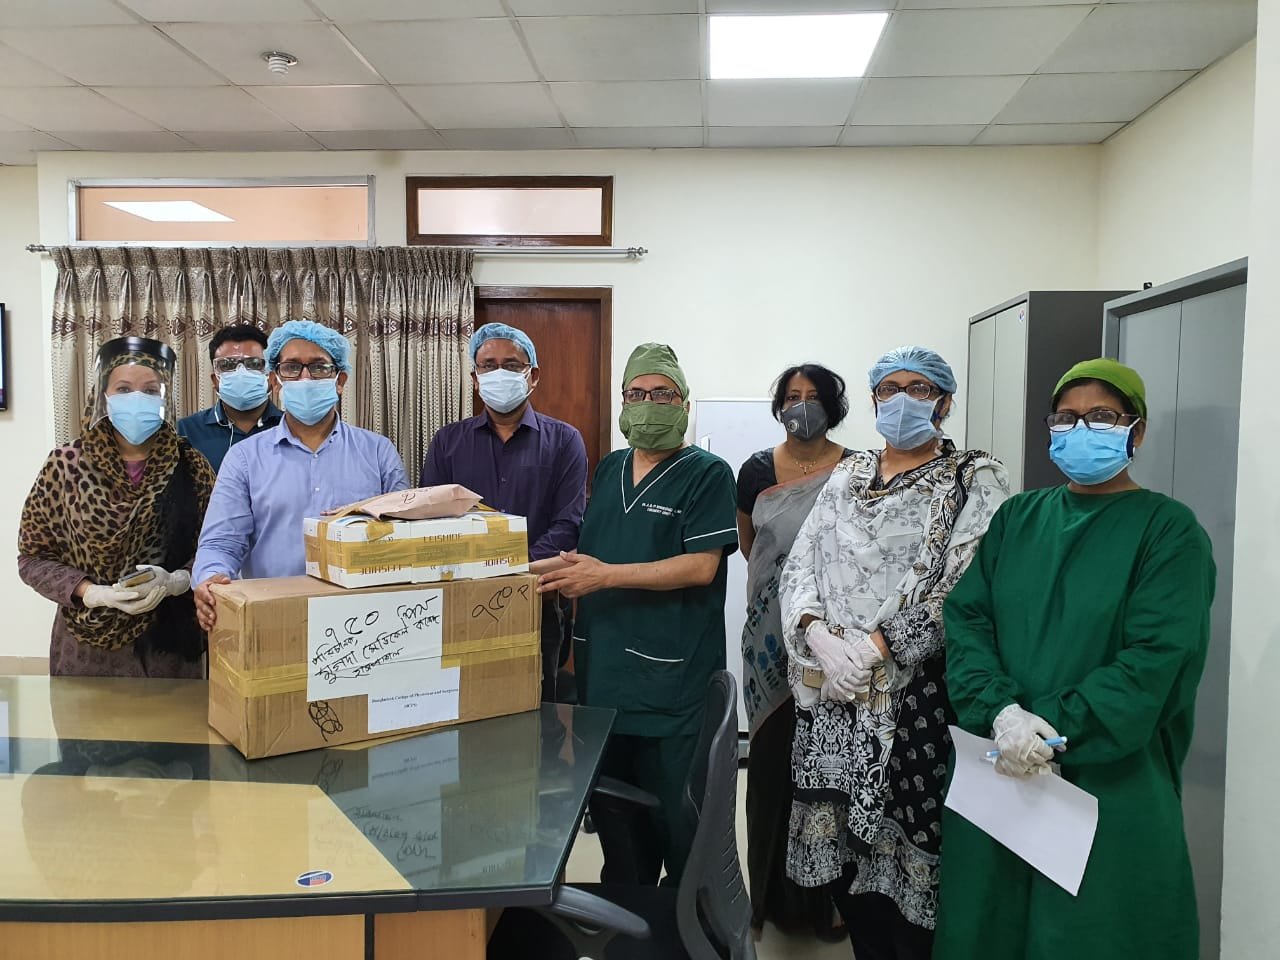 Donation of KN-95 Mask by BCPS to Director, Mugda Medical College Hospital  ( From the left Prof. Rubina Yasmin, Prof. & Head, Department of Medicine, Dr. Shah Golam Nabi, Principal &Director (Acting), Dr. Mahbubur Rahman Kachi, Assistant Professor, Dept. of Surgery, Mugda Medical College, Prof. Abul Bashar Mohammed Khurshid Alam, Honorary Secretary, BCPS, Dr. Fahmida Naz, Assistant Professor, Obst. & Gynae and Prof. Nahid Yeasmin, Head of the Dept, Obst. & Gynae, Mugda Medical College)